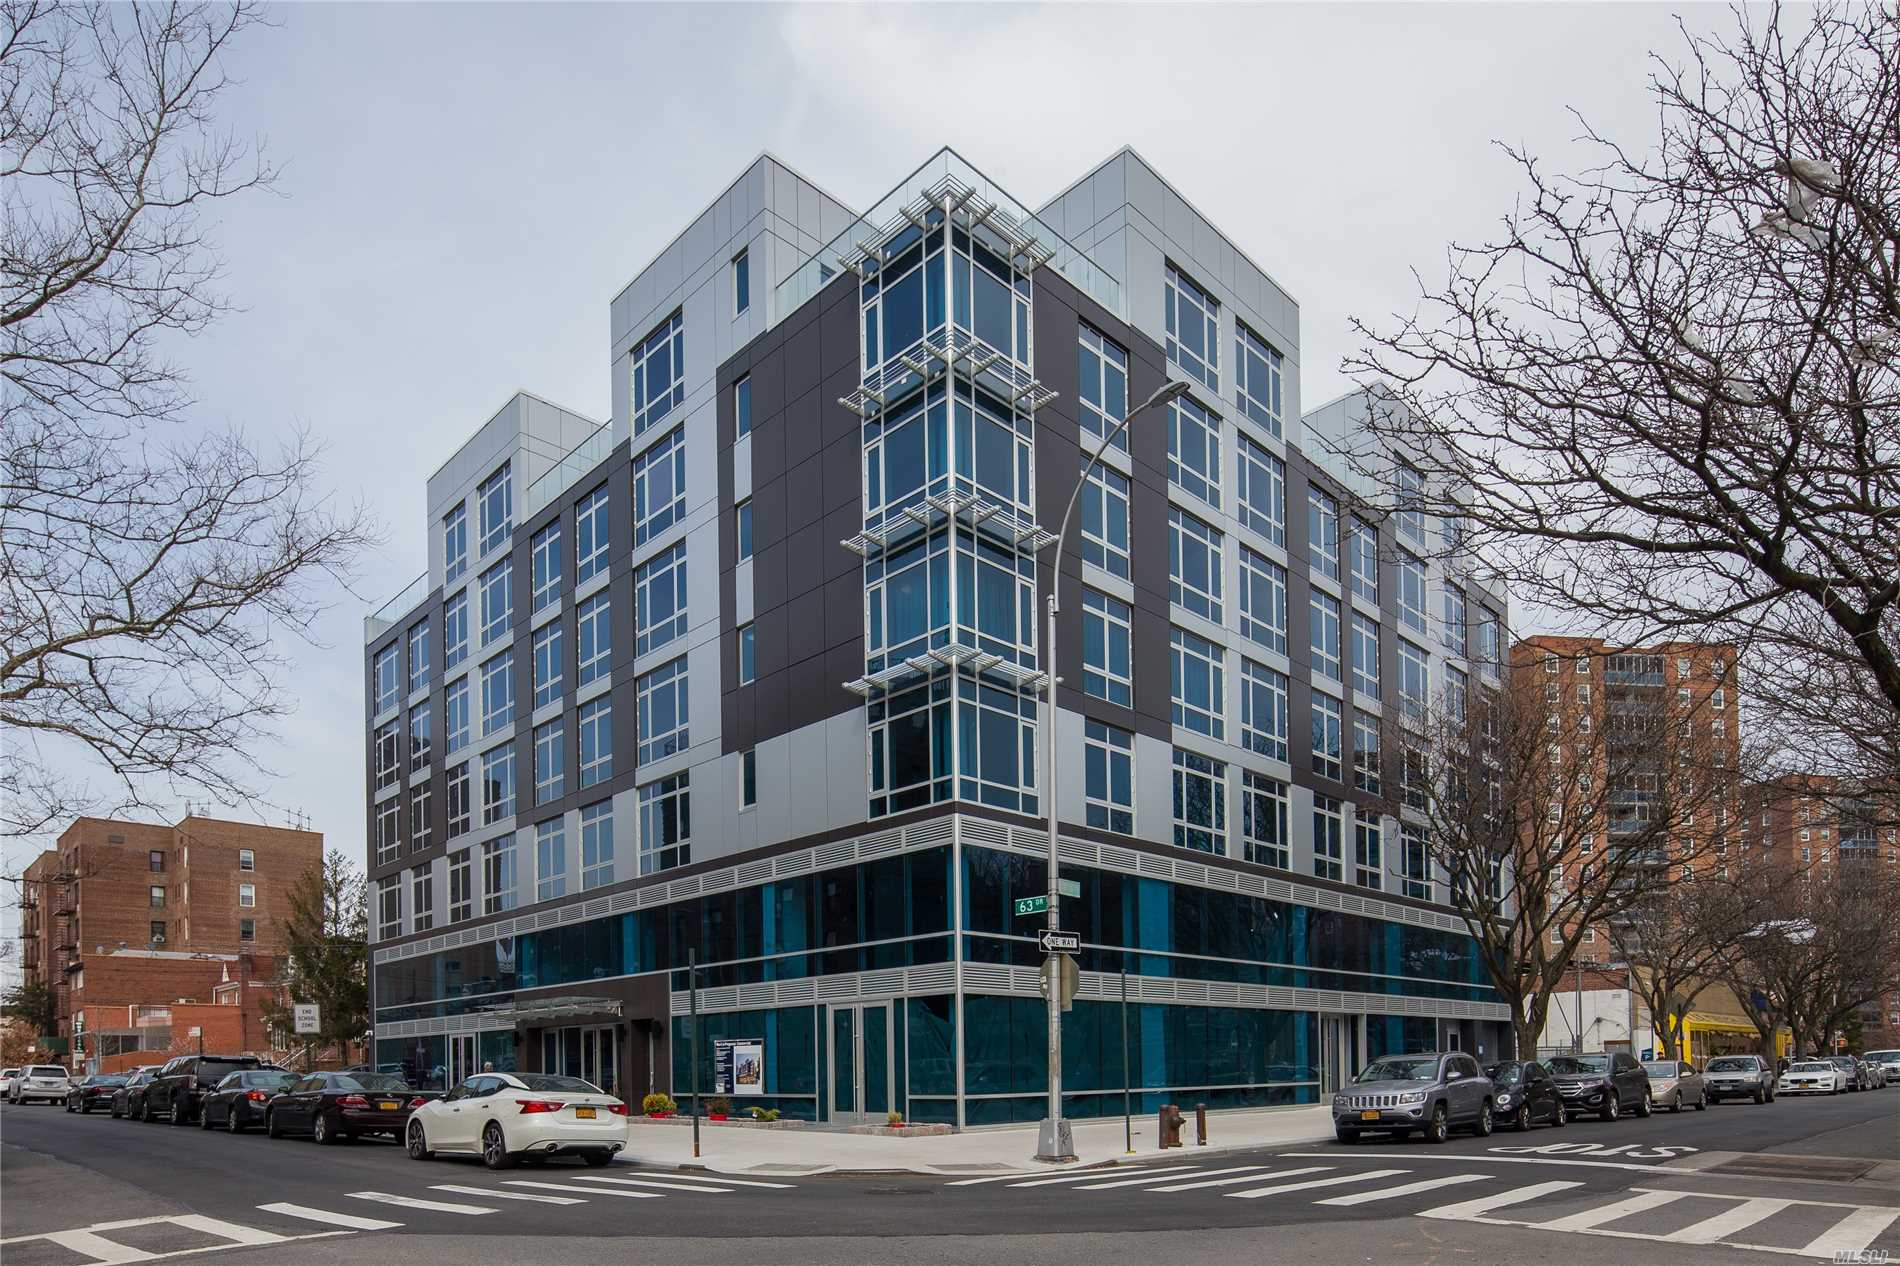 Brand New Condo With 15 Years Tax Abatement, 1 Block To Subway Station, Queens Blvd., Shopping Mall.....Modern Design With Top Line Appliances